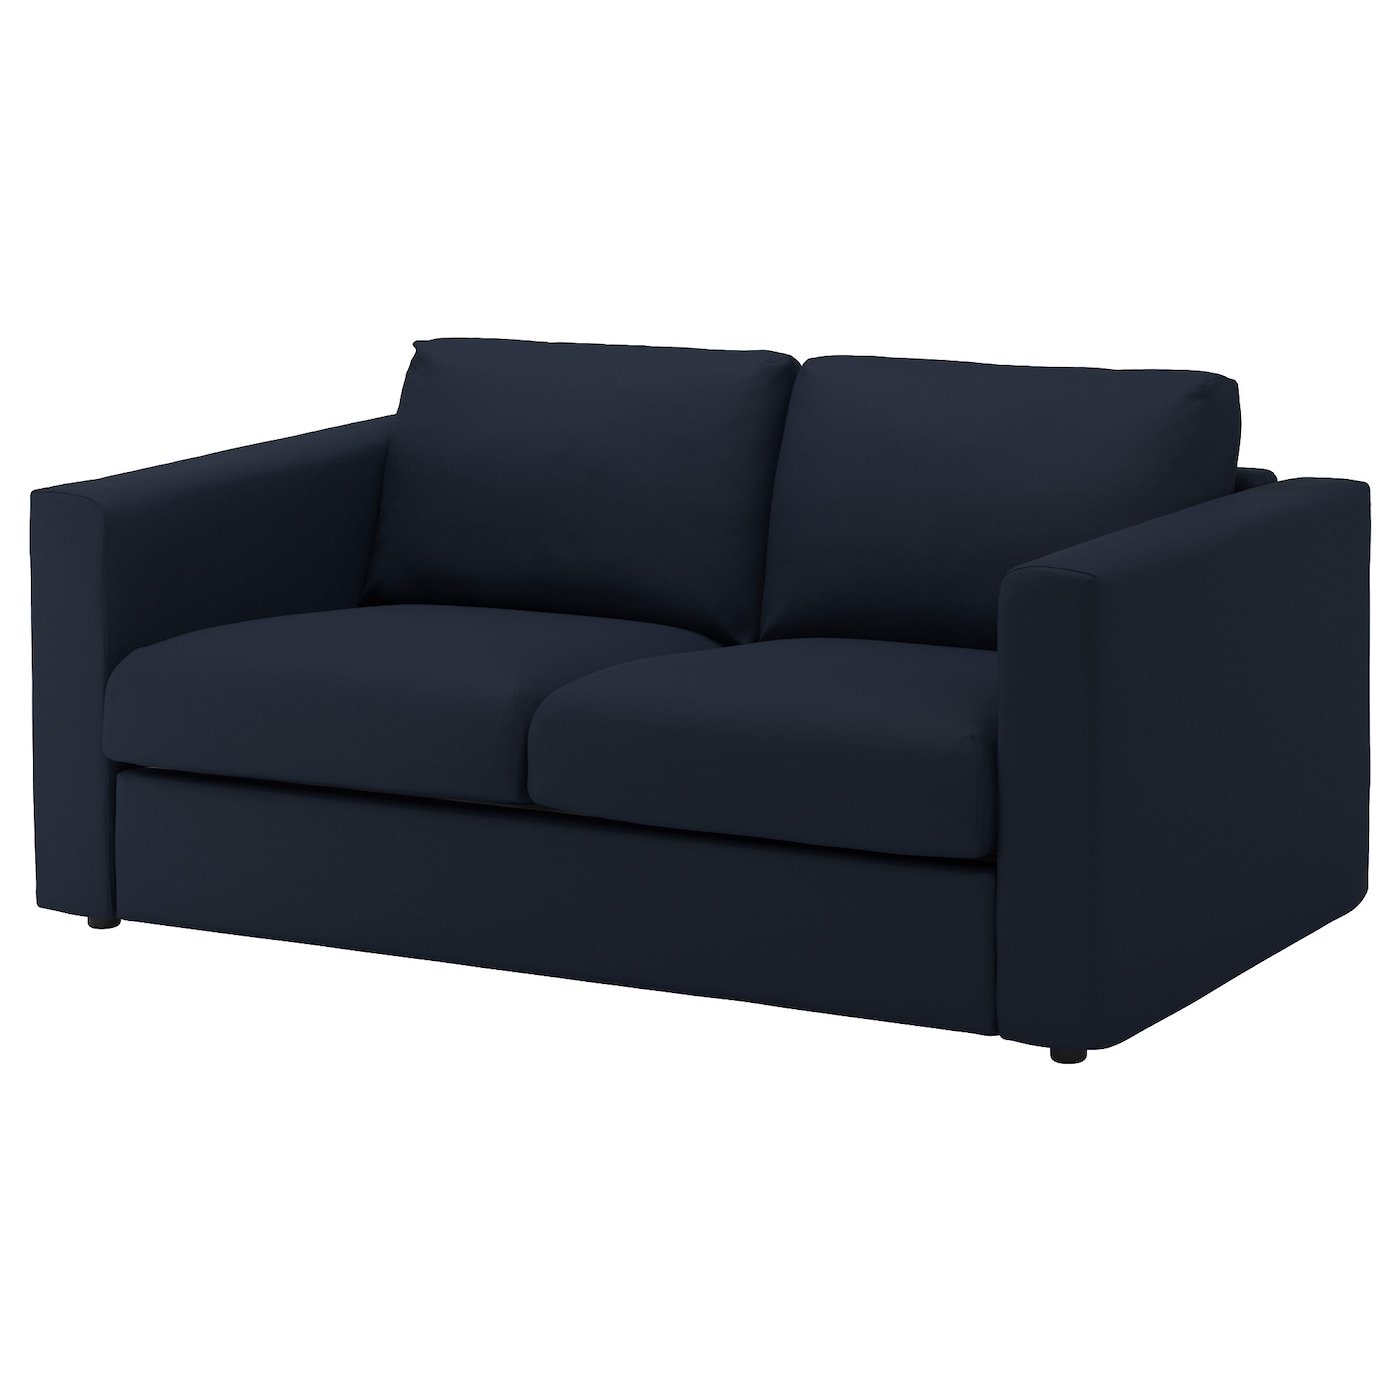 Vimle 2 seat sofa gr sbo black blue ikea for Ikea couch planer